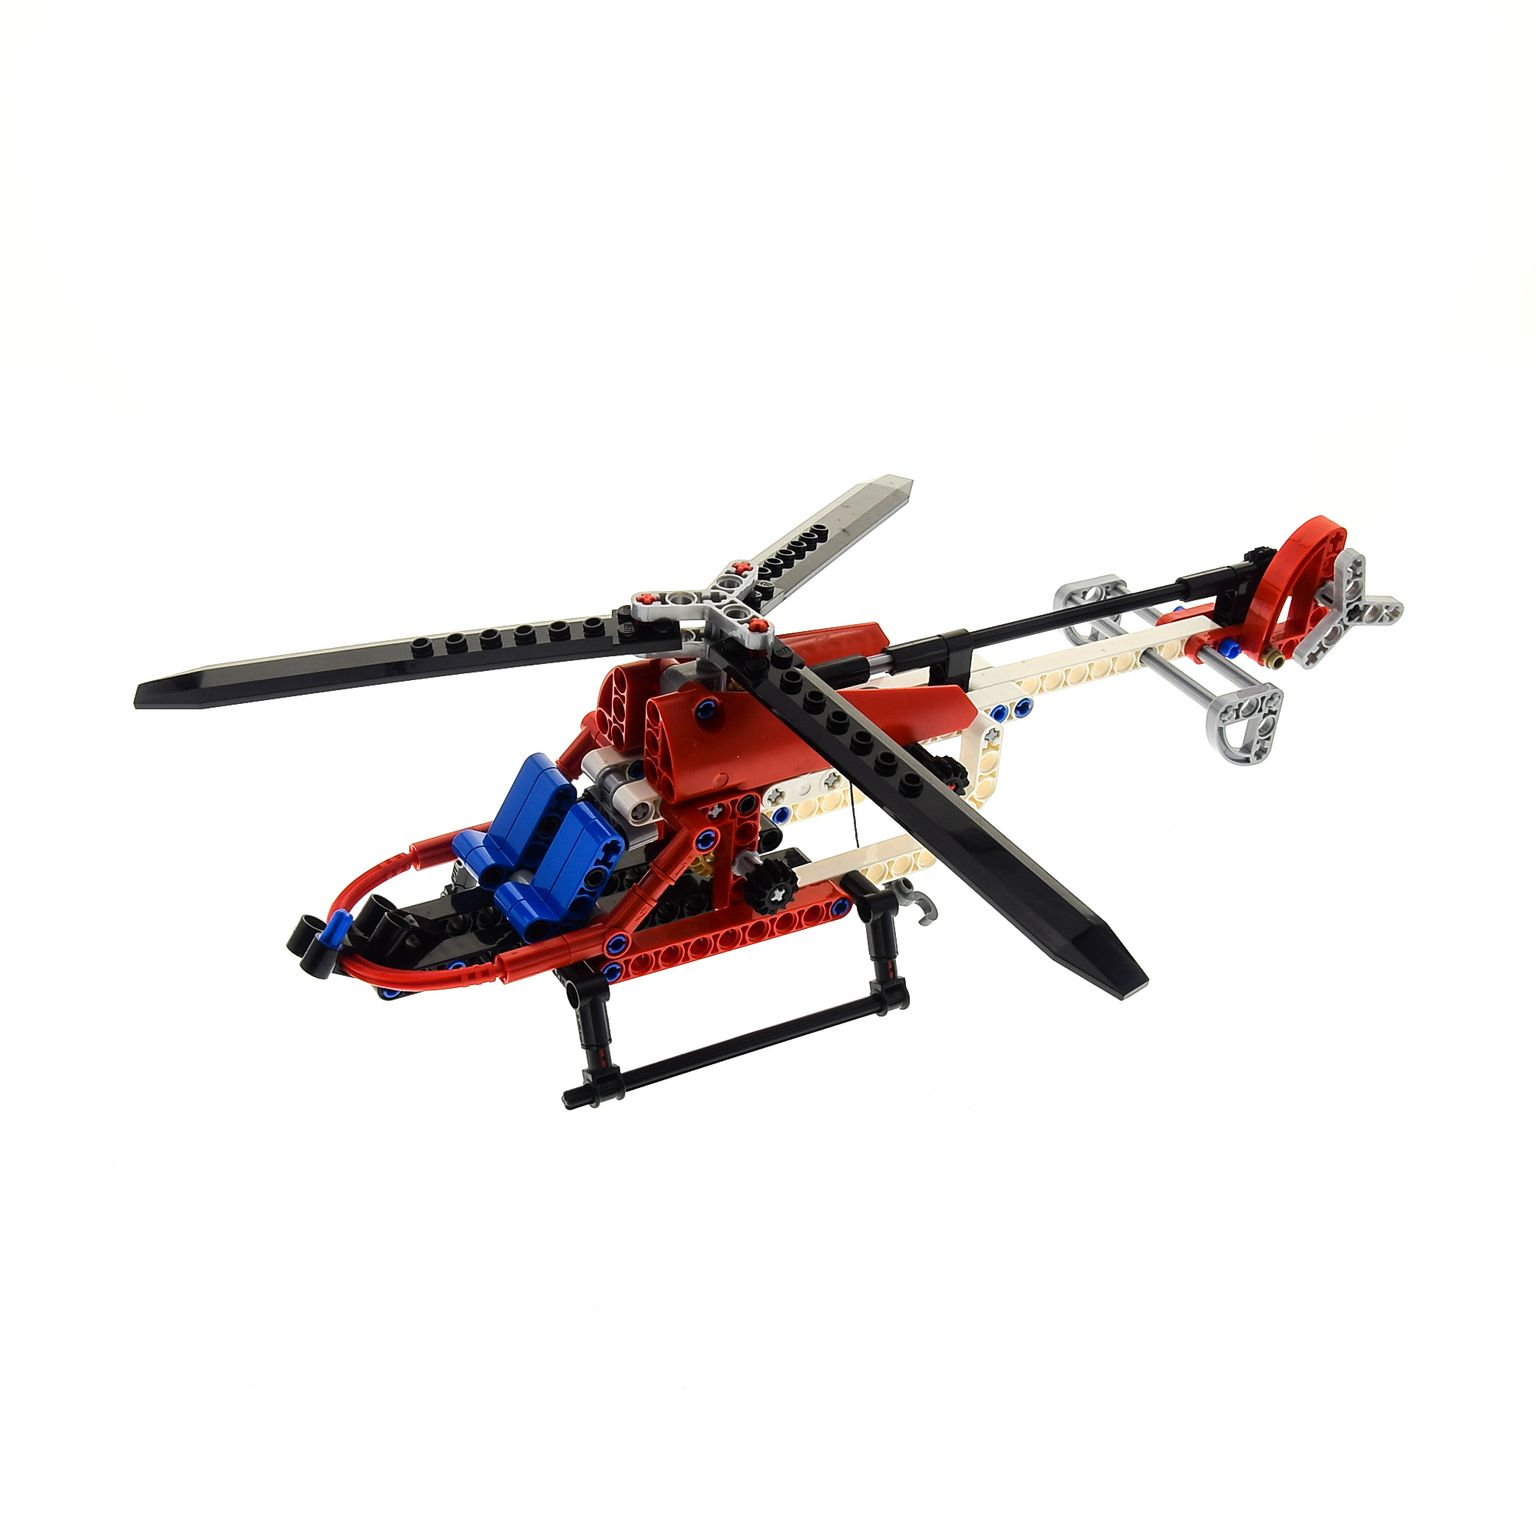 1 x lego technic set modell f r helicopter 8046 weiss rot. Black Bedroom Furniture Sets. Home Design Ideas